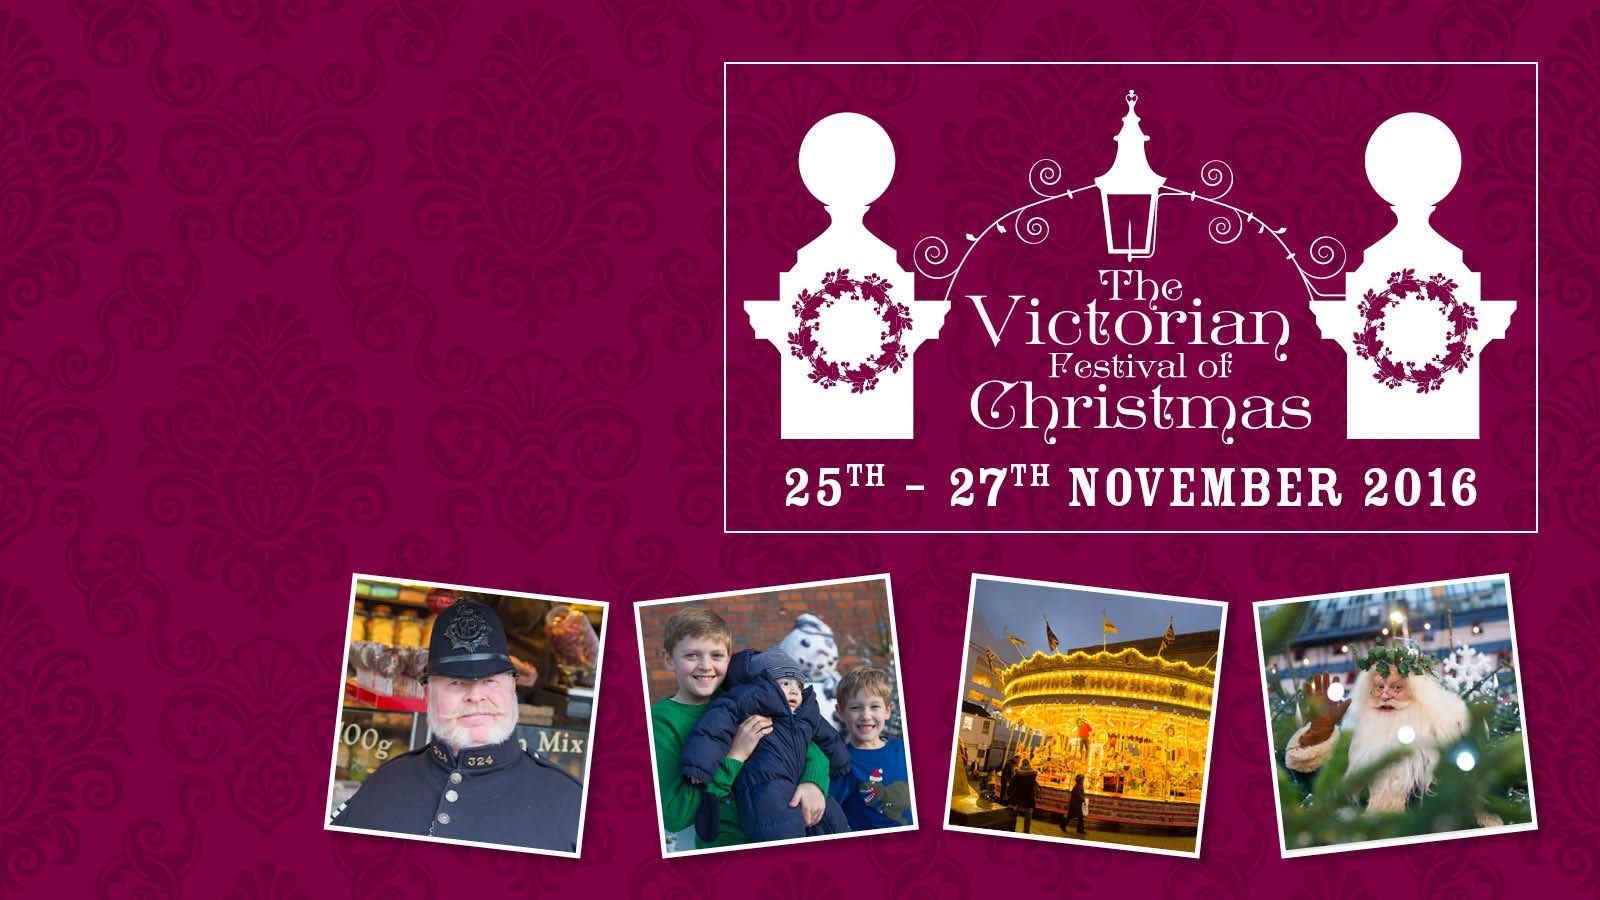 Victorian Festival of Christmas 2016